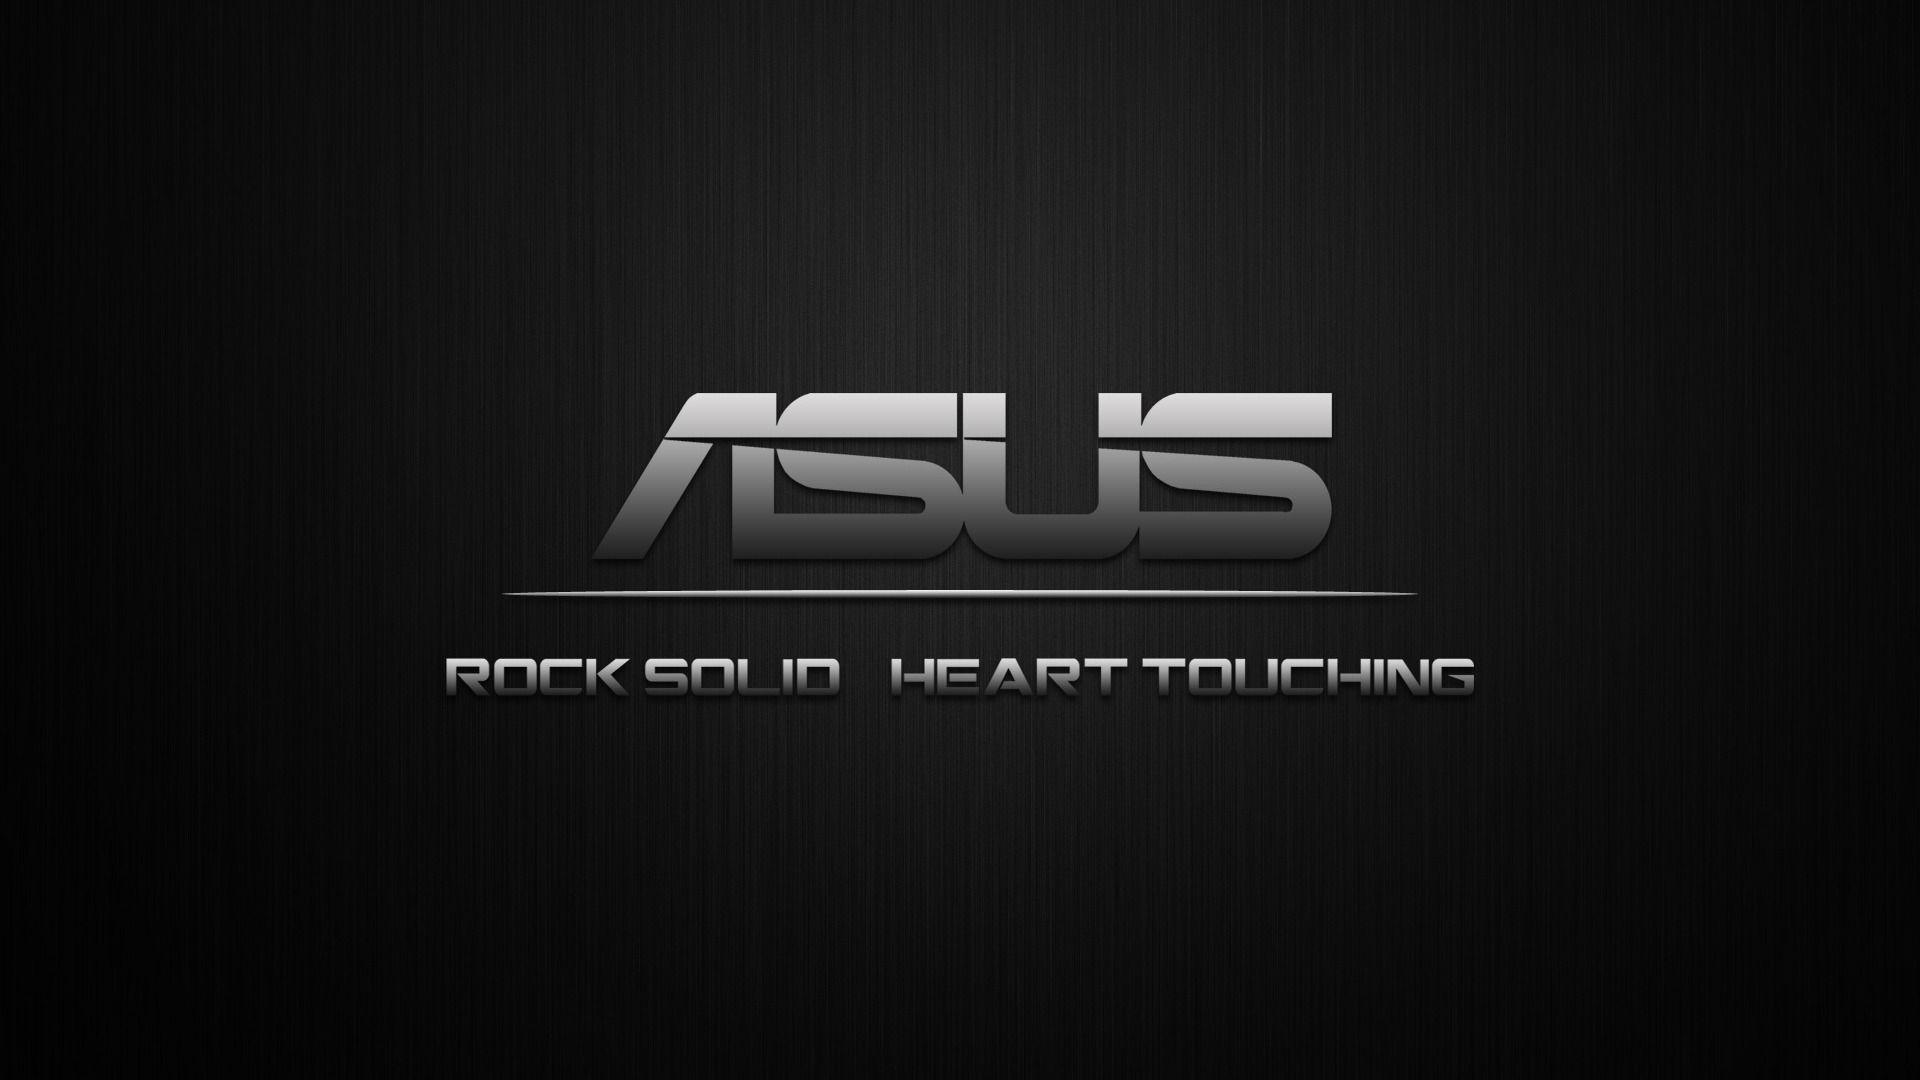 ASUS Rock Solid Heart Touching Wallpaper